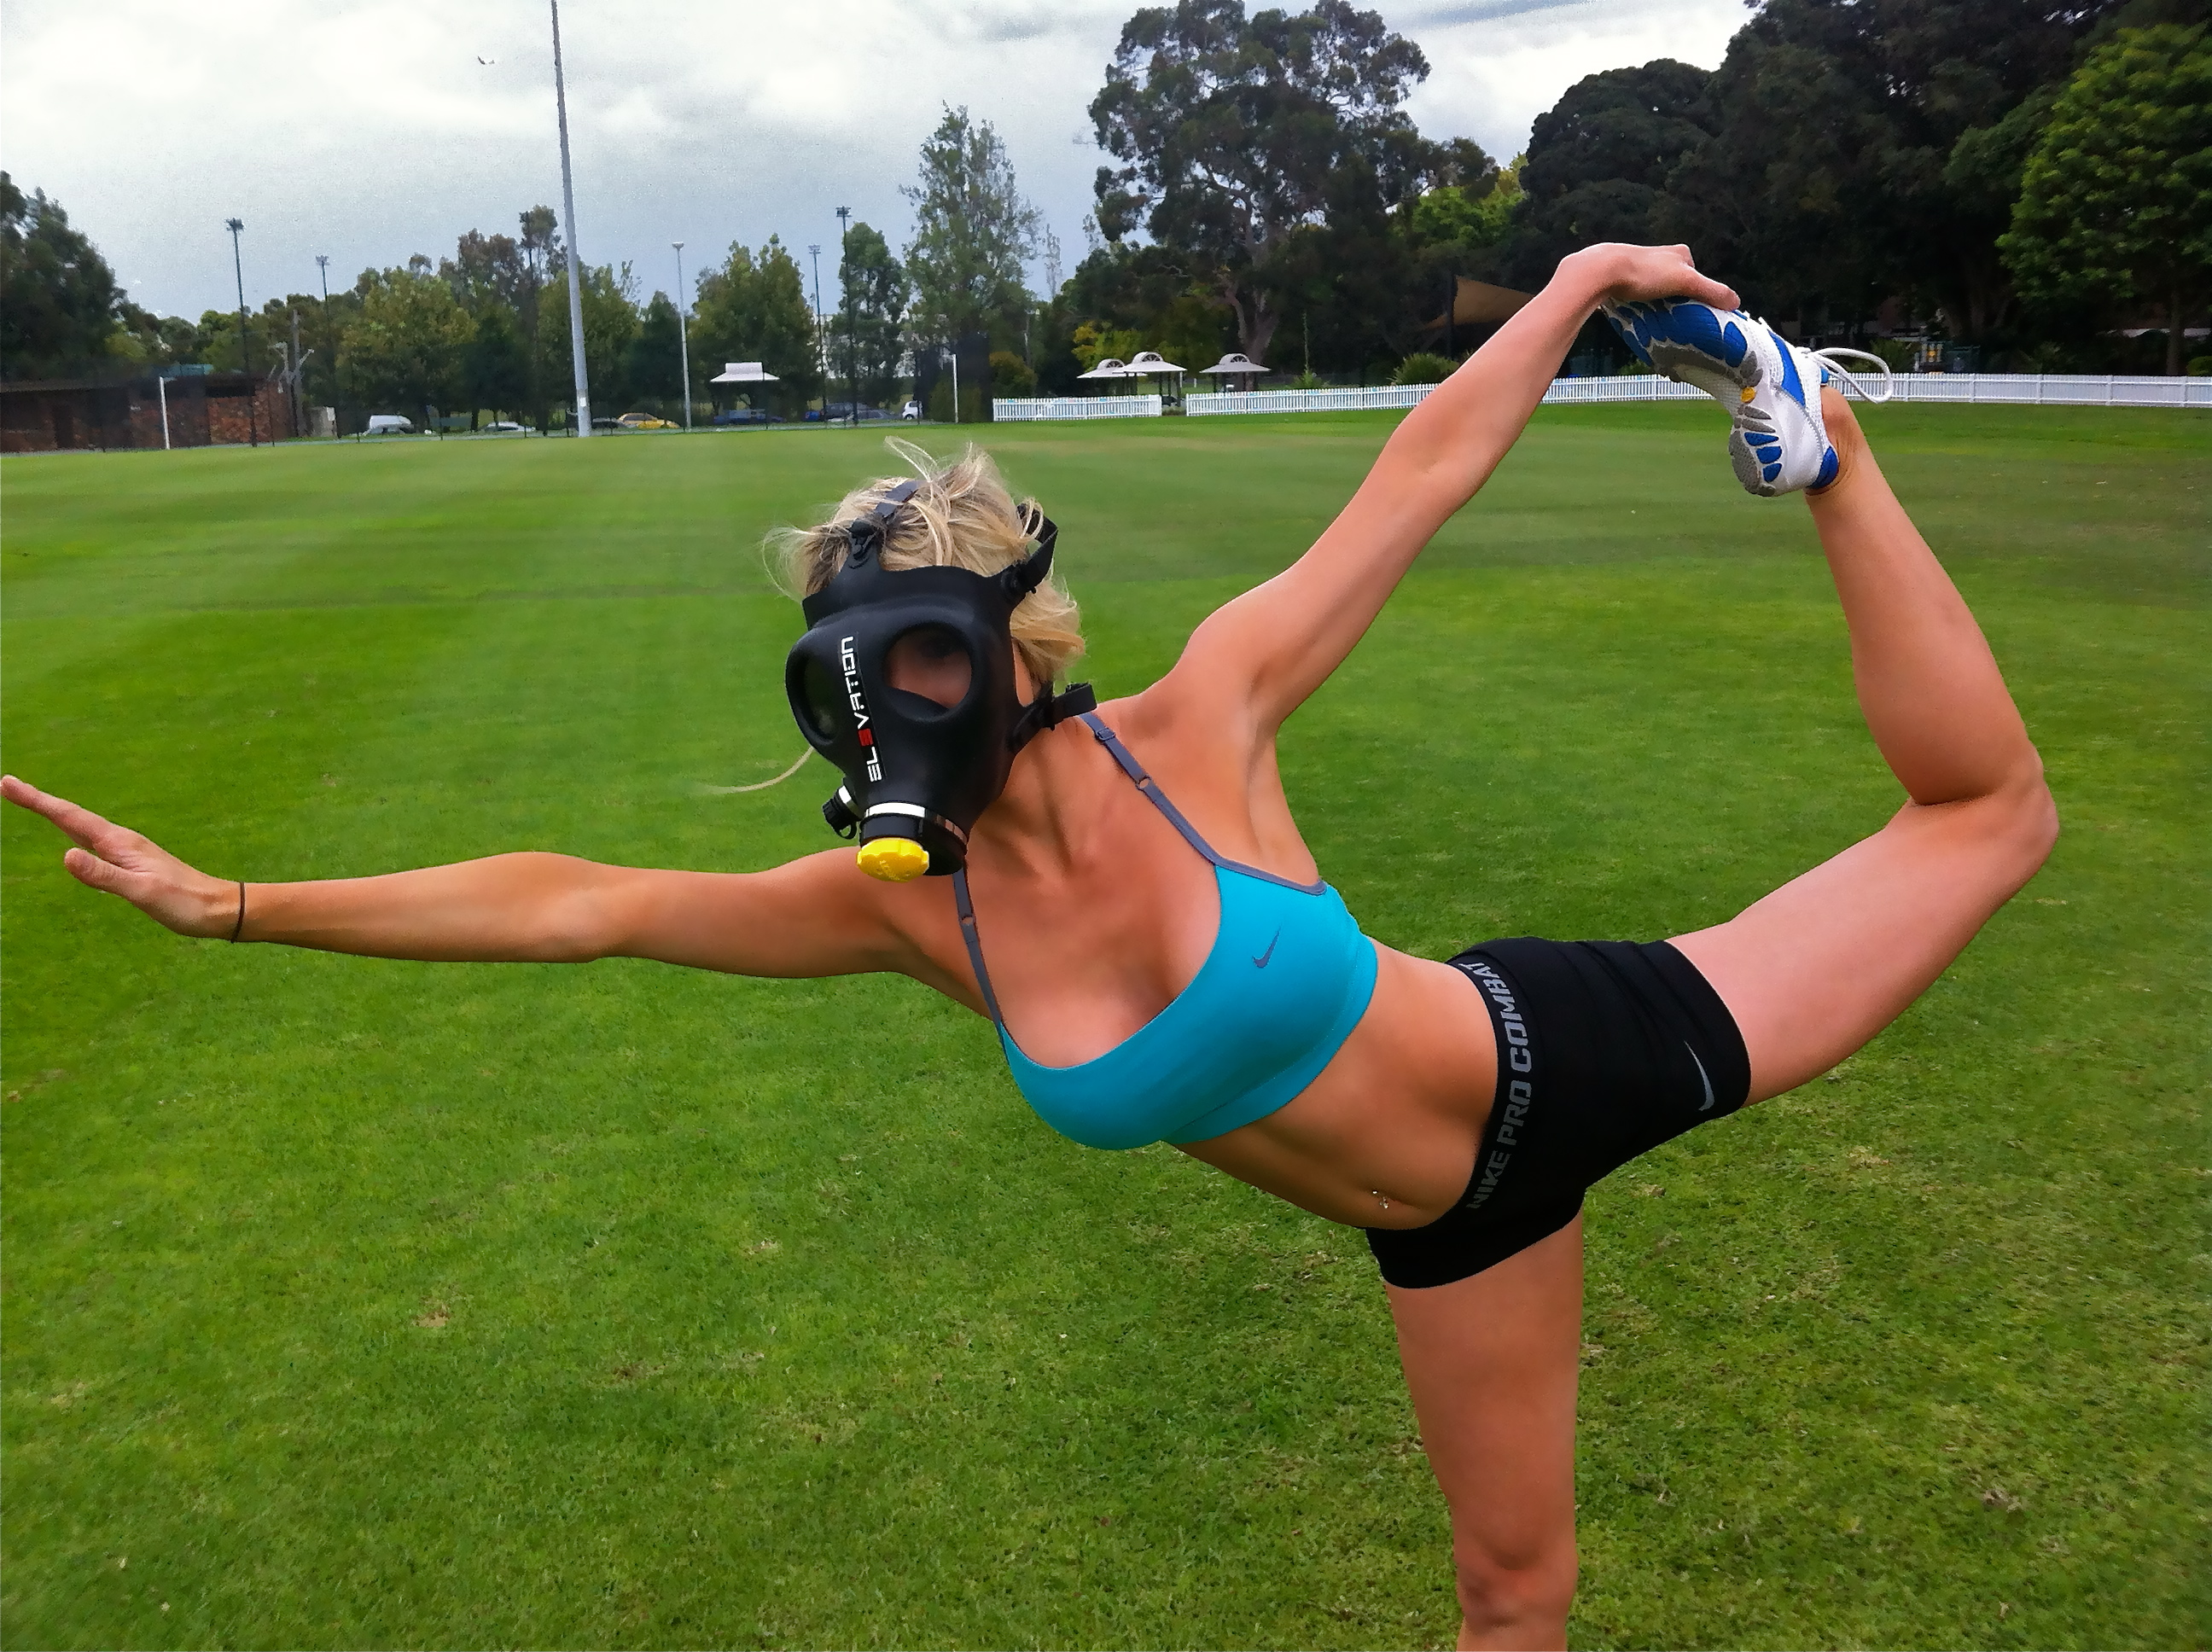 Emma doing yoga in Elevation Training Mask